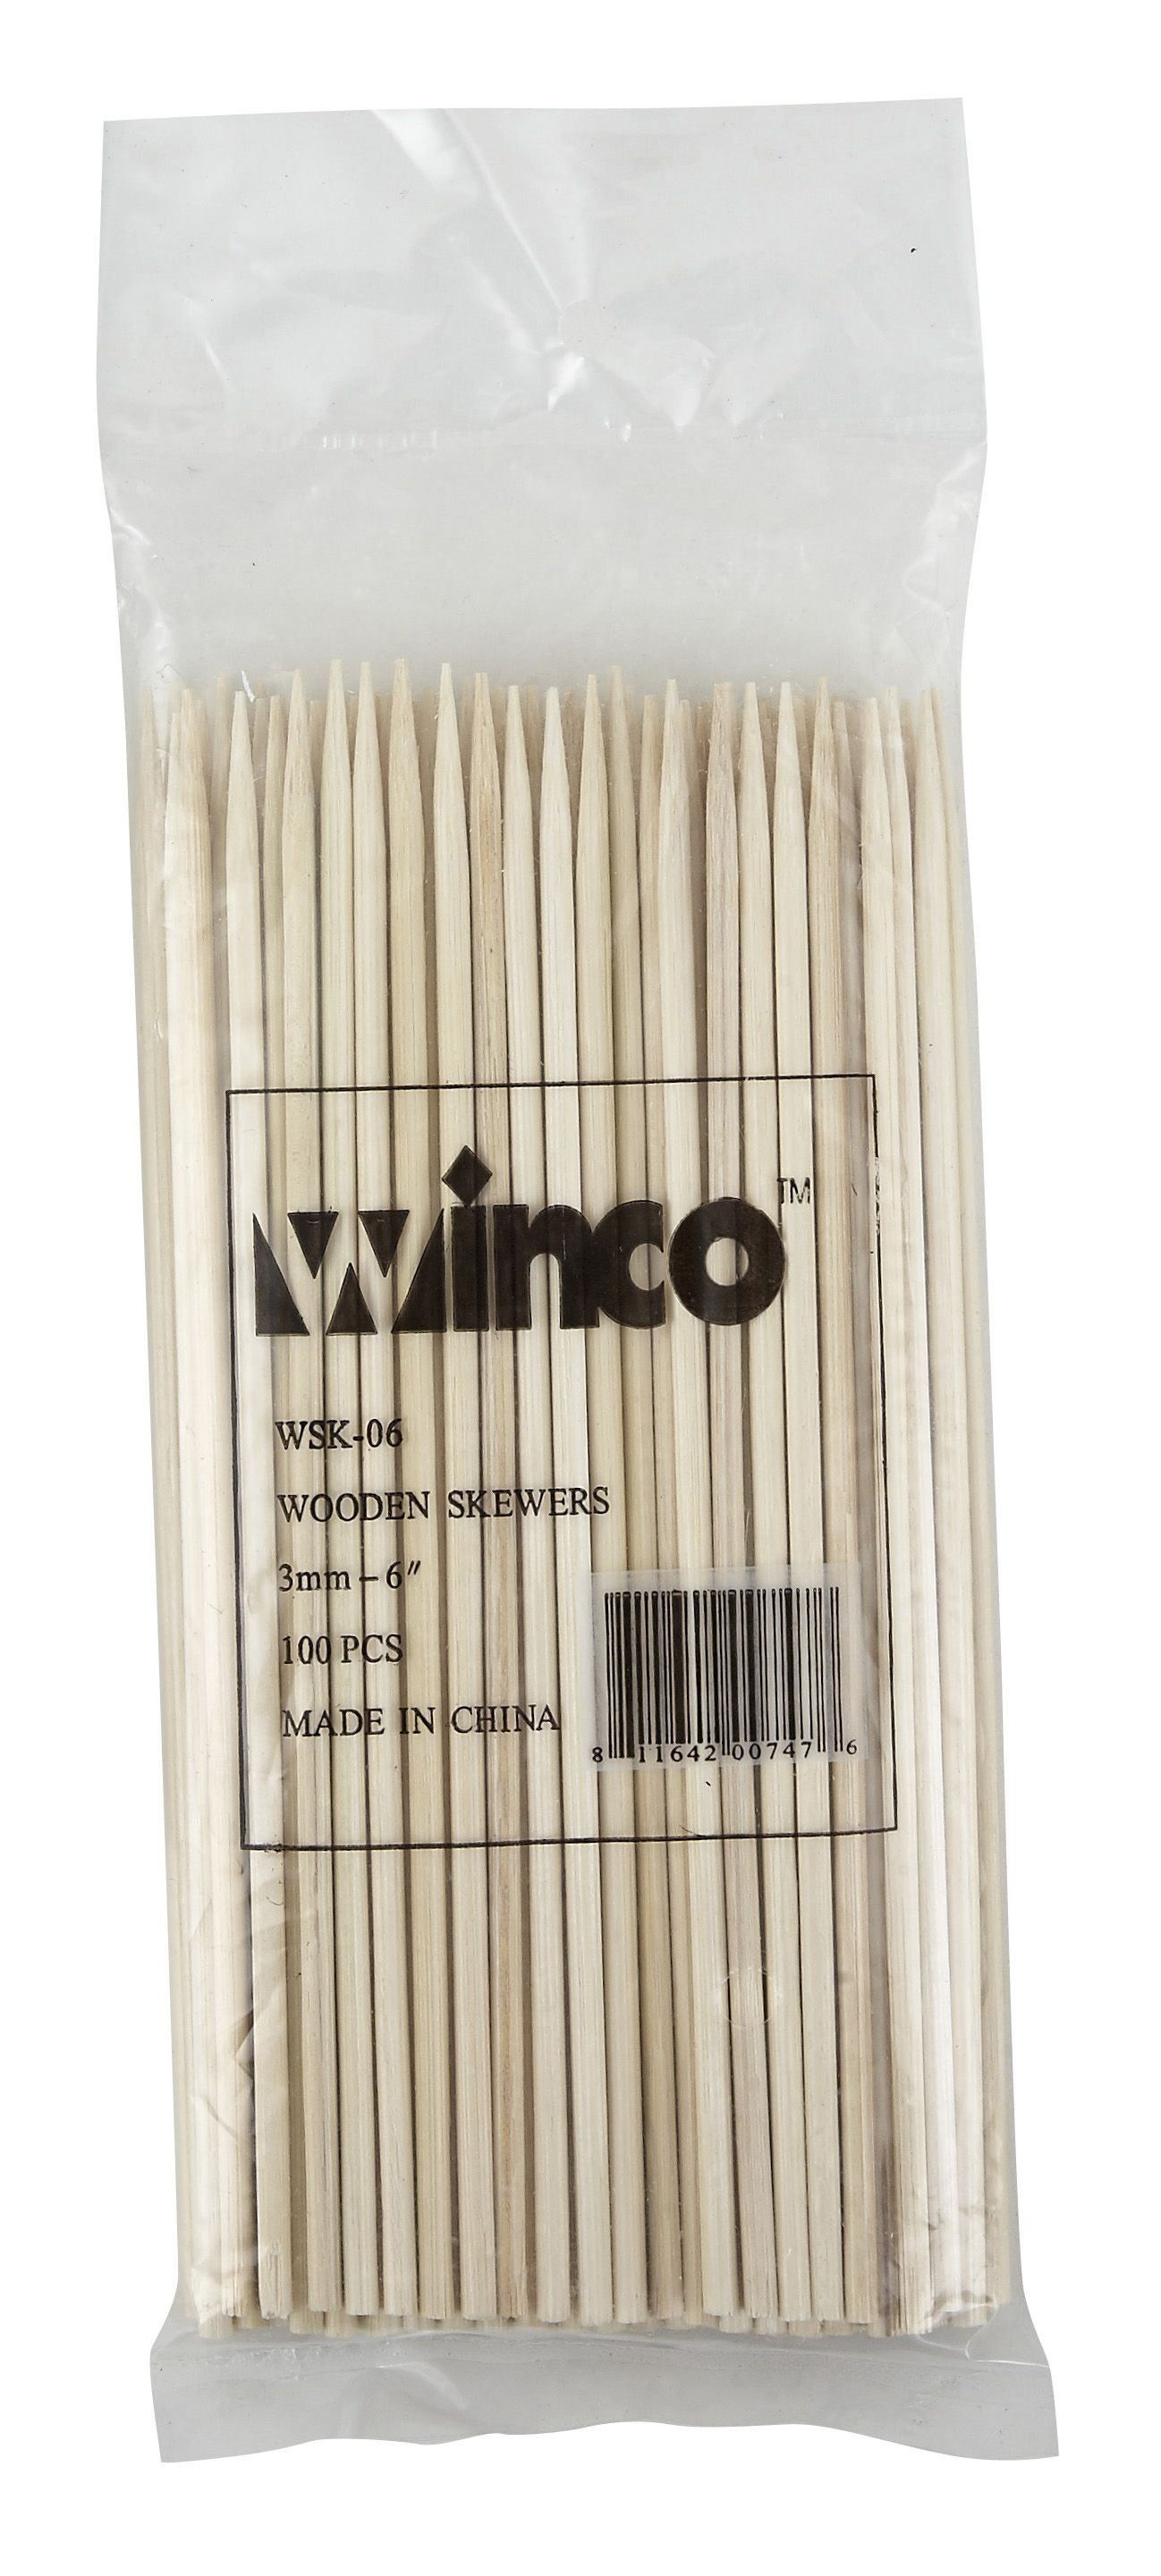 6 Long Bamboo Skewers (100/bag)